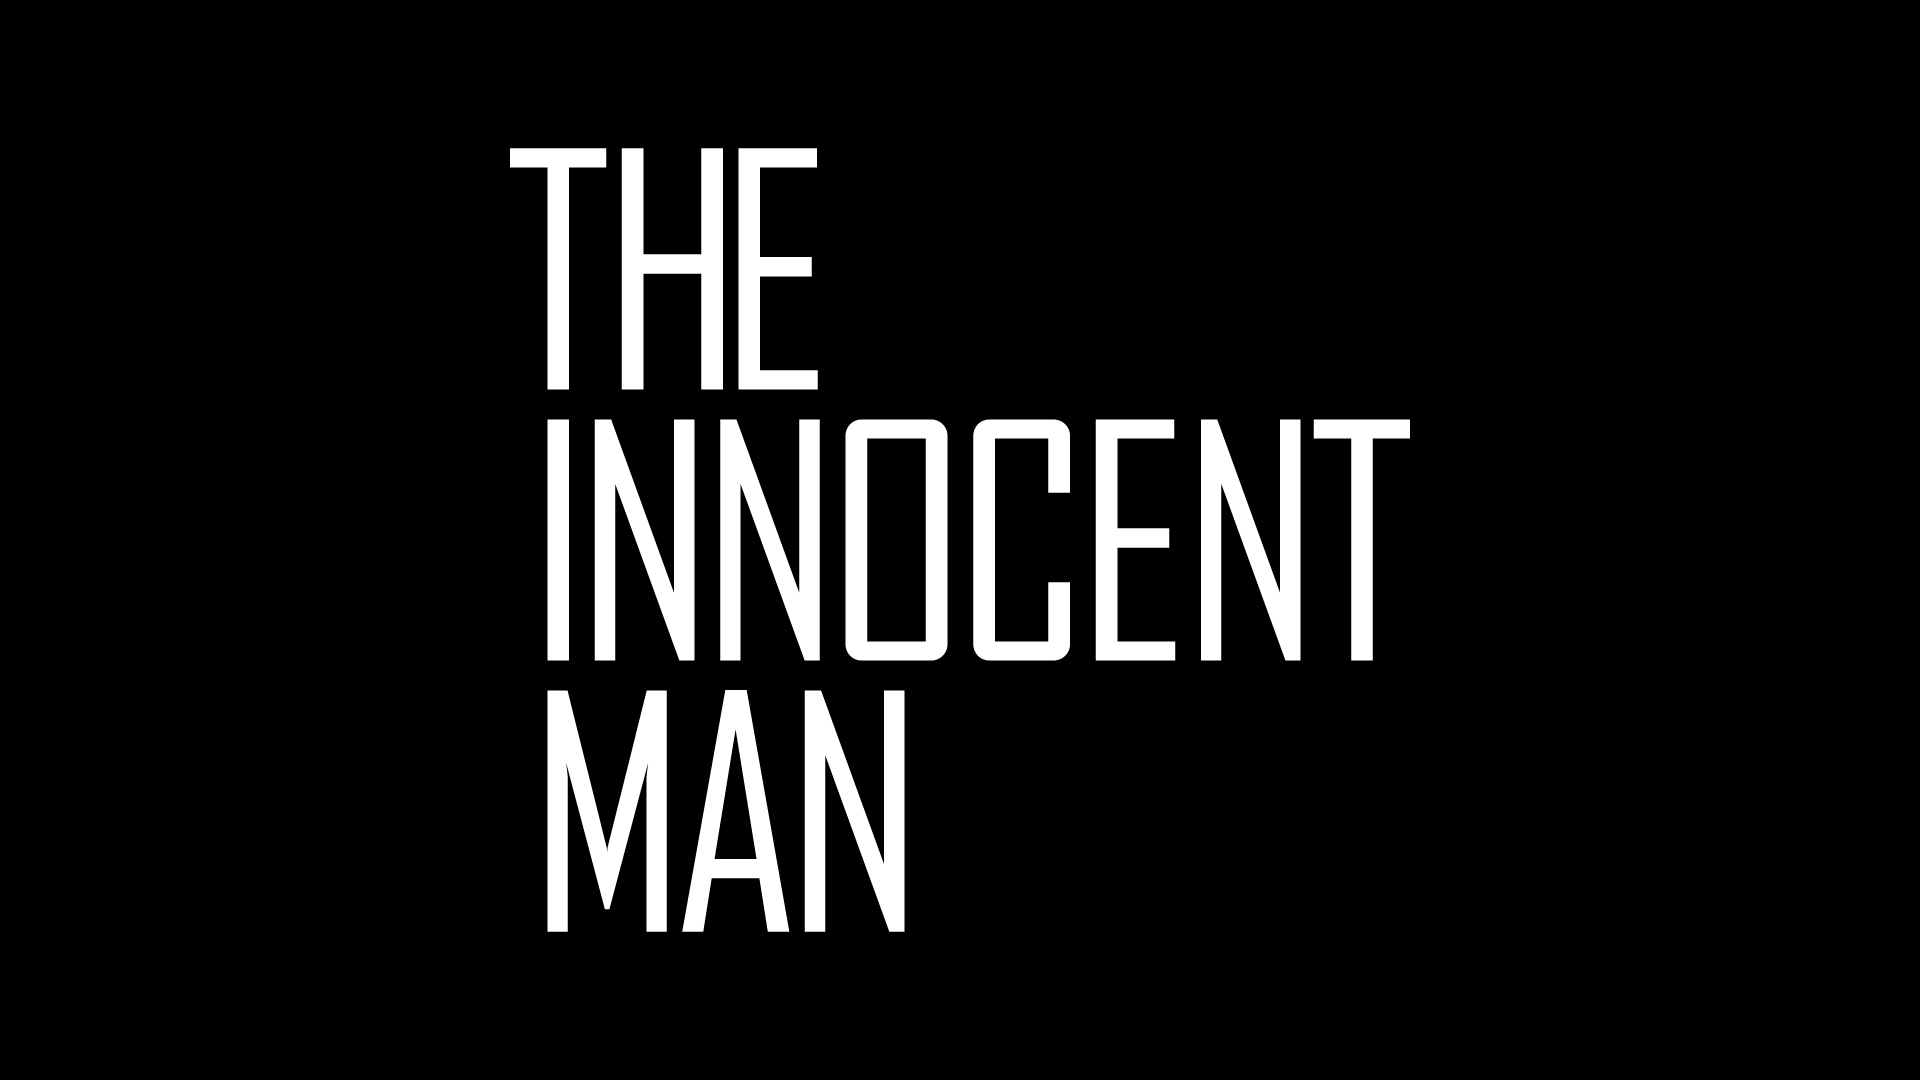 THEINNOCENTMAN